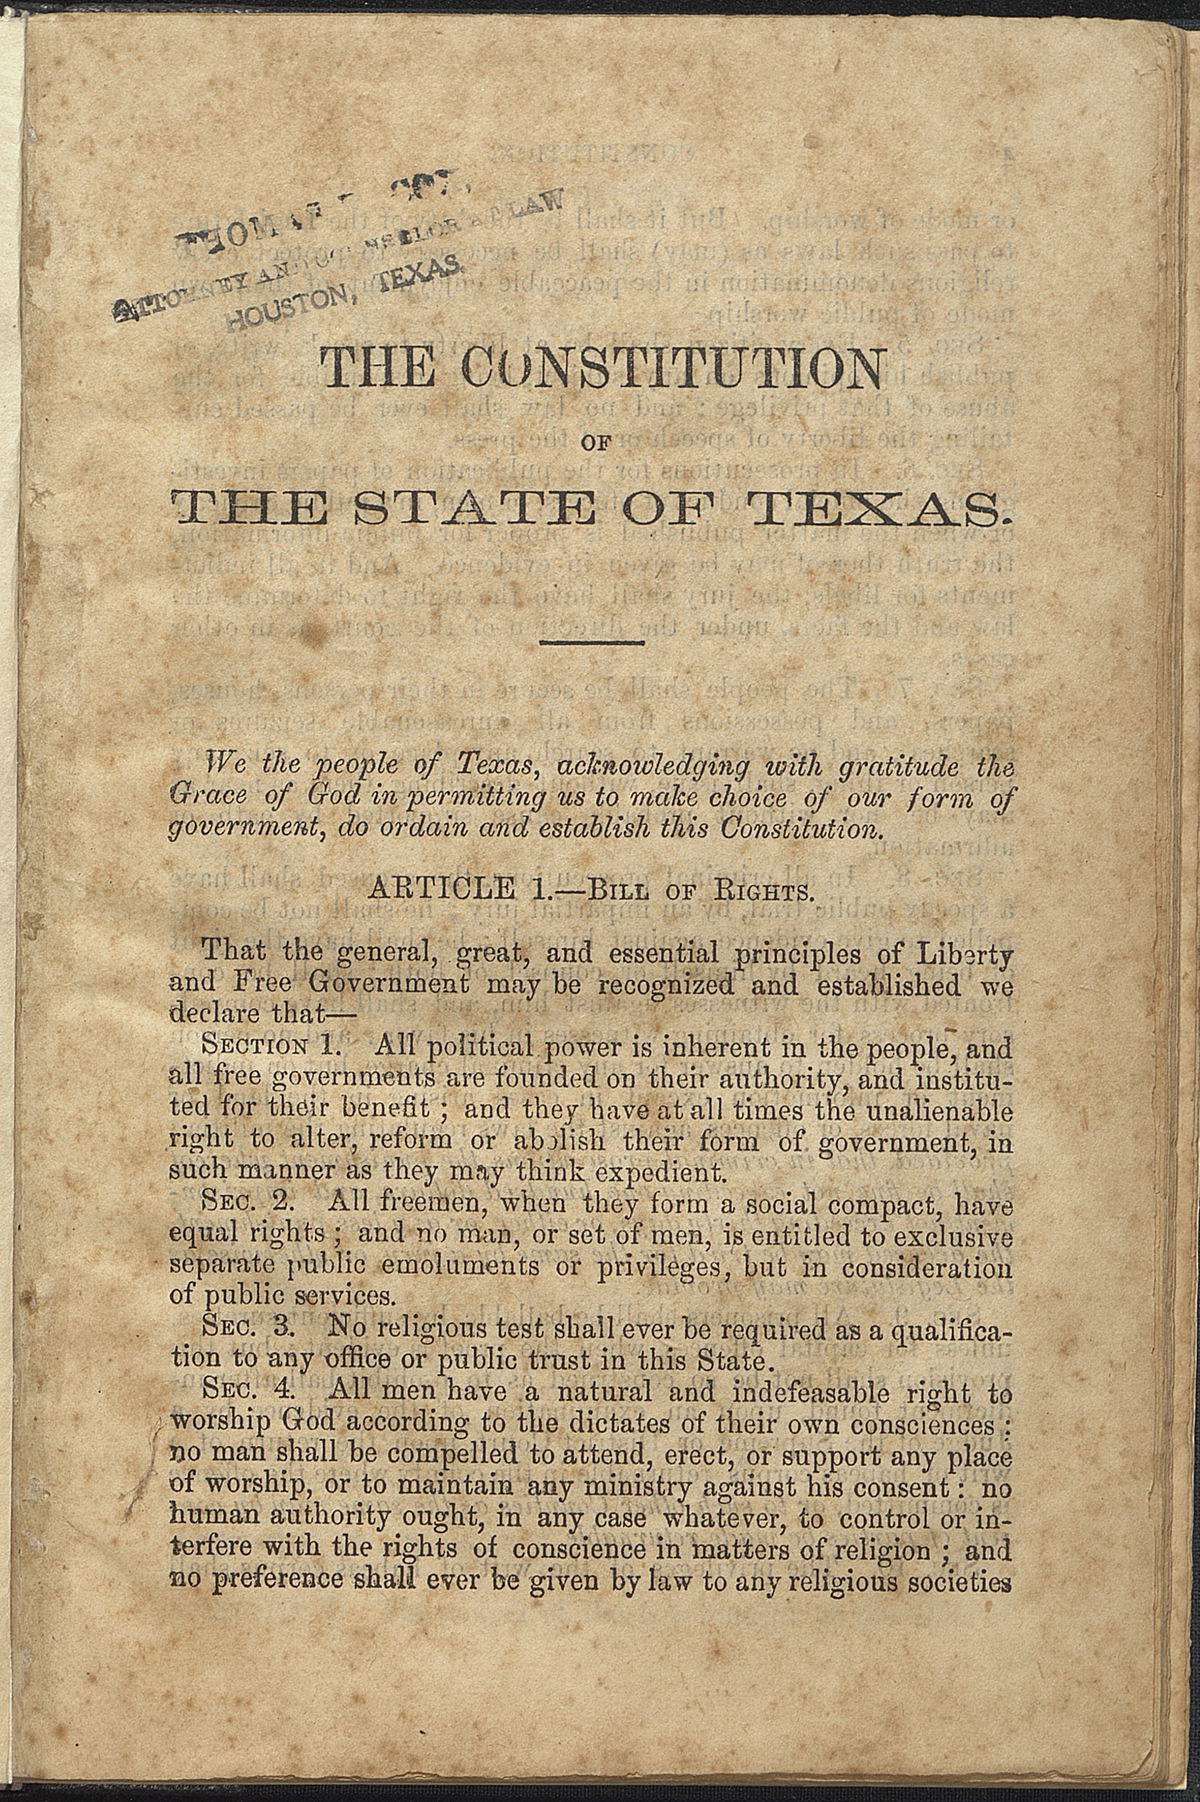 Preamble; Article I, Sections 1-4